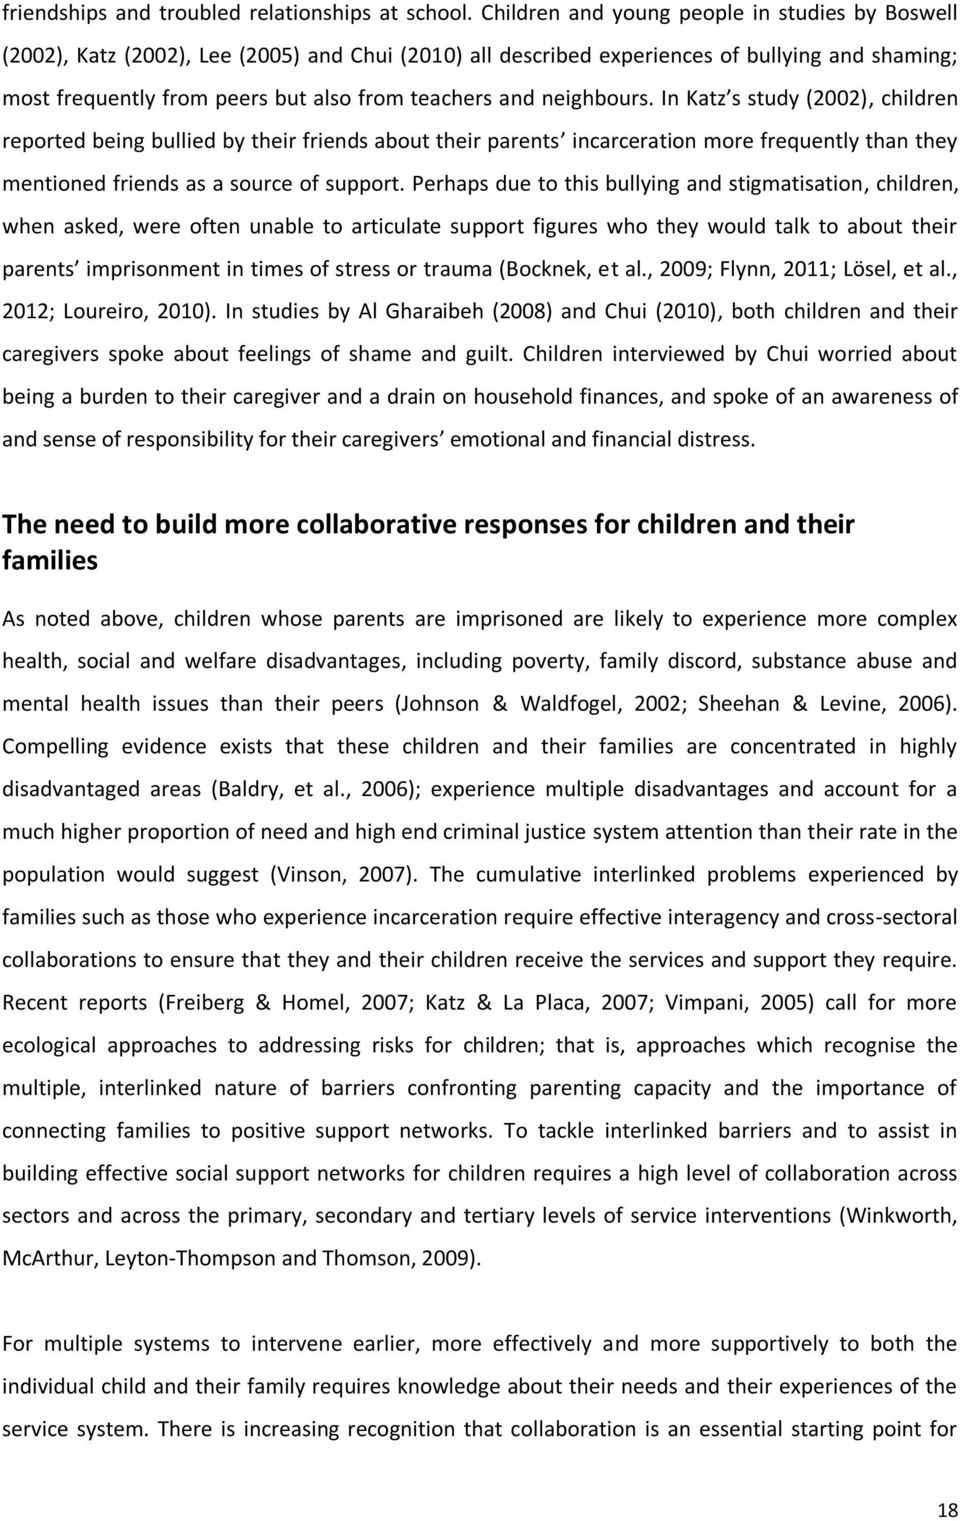 and neighbours. In Katz s study (2002), children reported being bullied by their friends about their parents incarceration more frequently than they mentioned friends as a source of support.